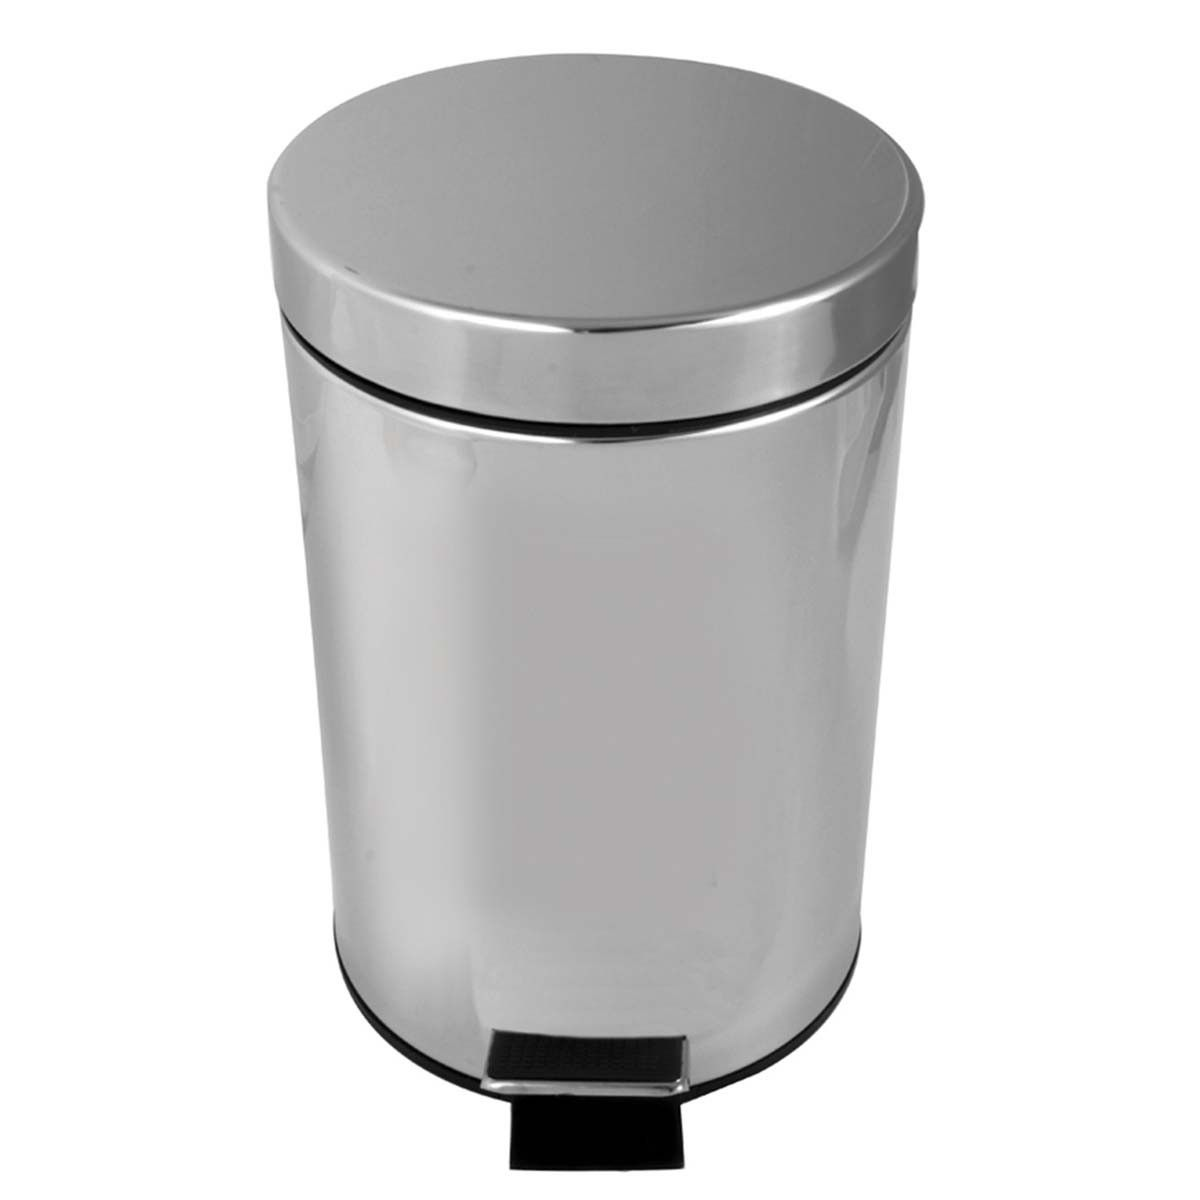 wildberry - stainless steel pedal bin - 3 litre - abs6100 | buy